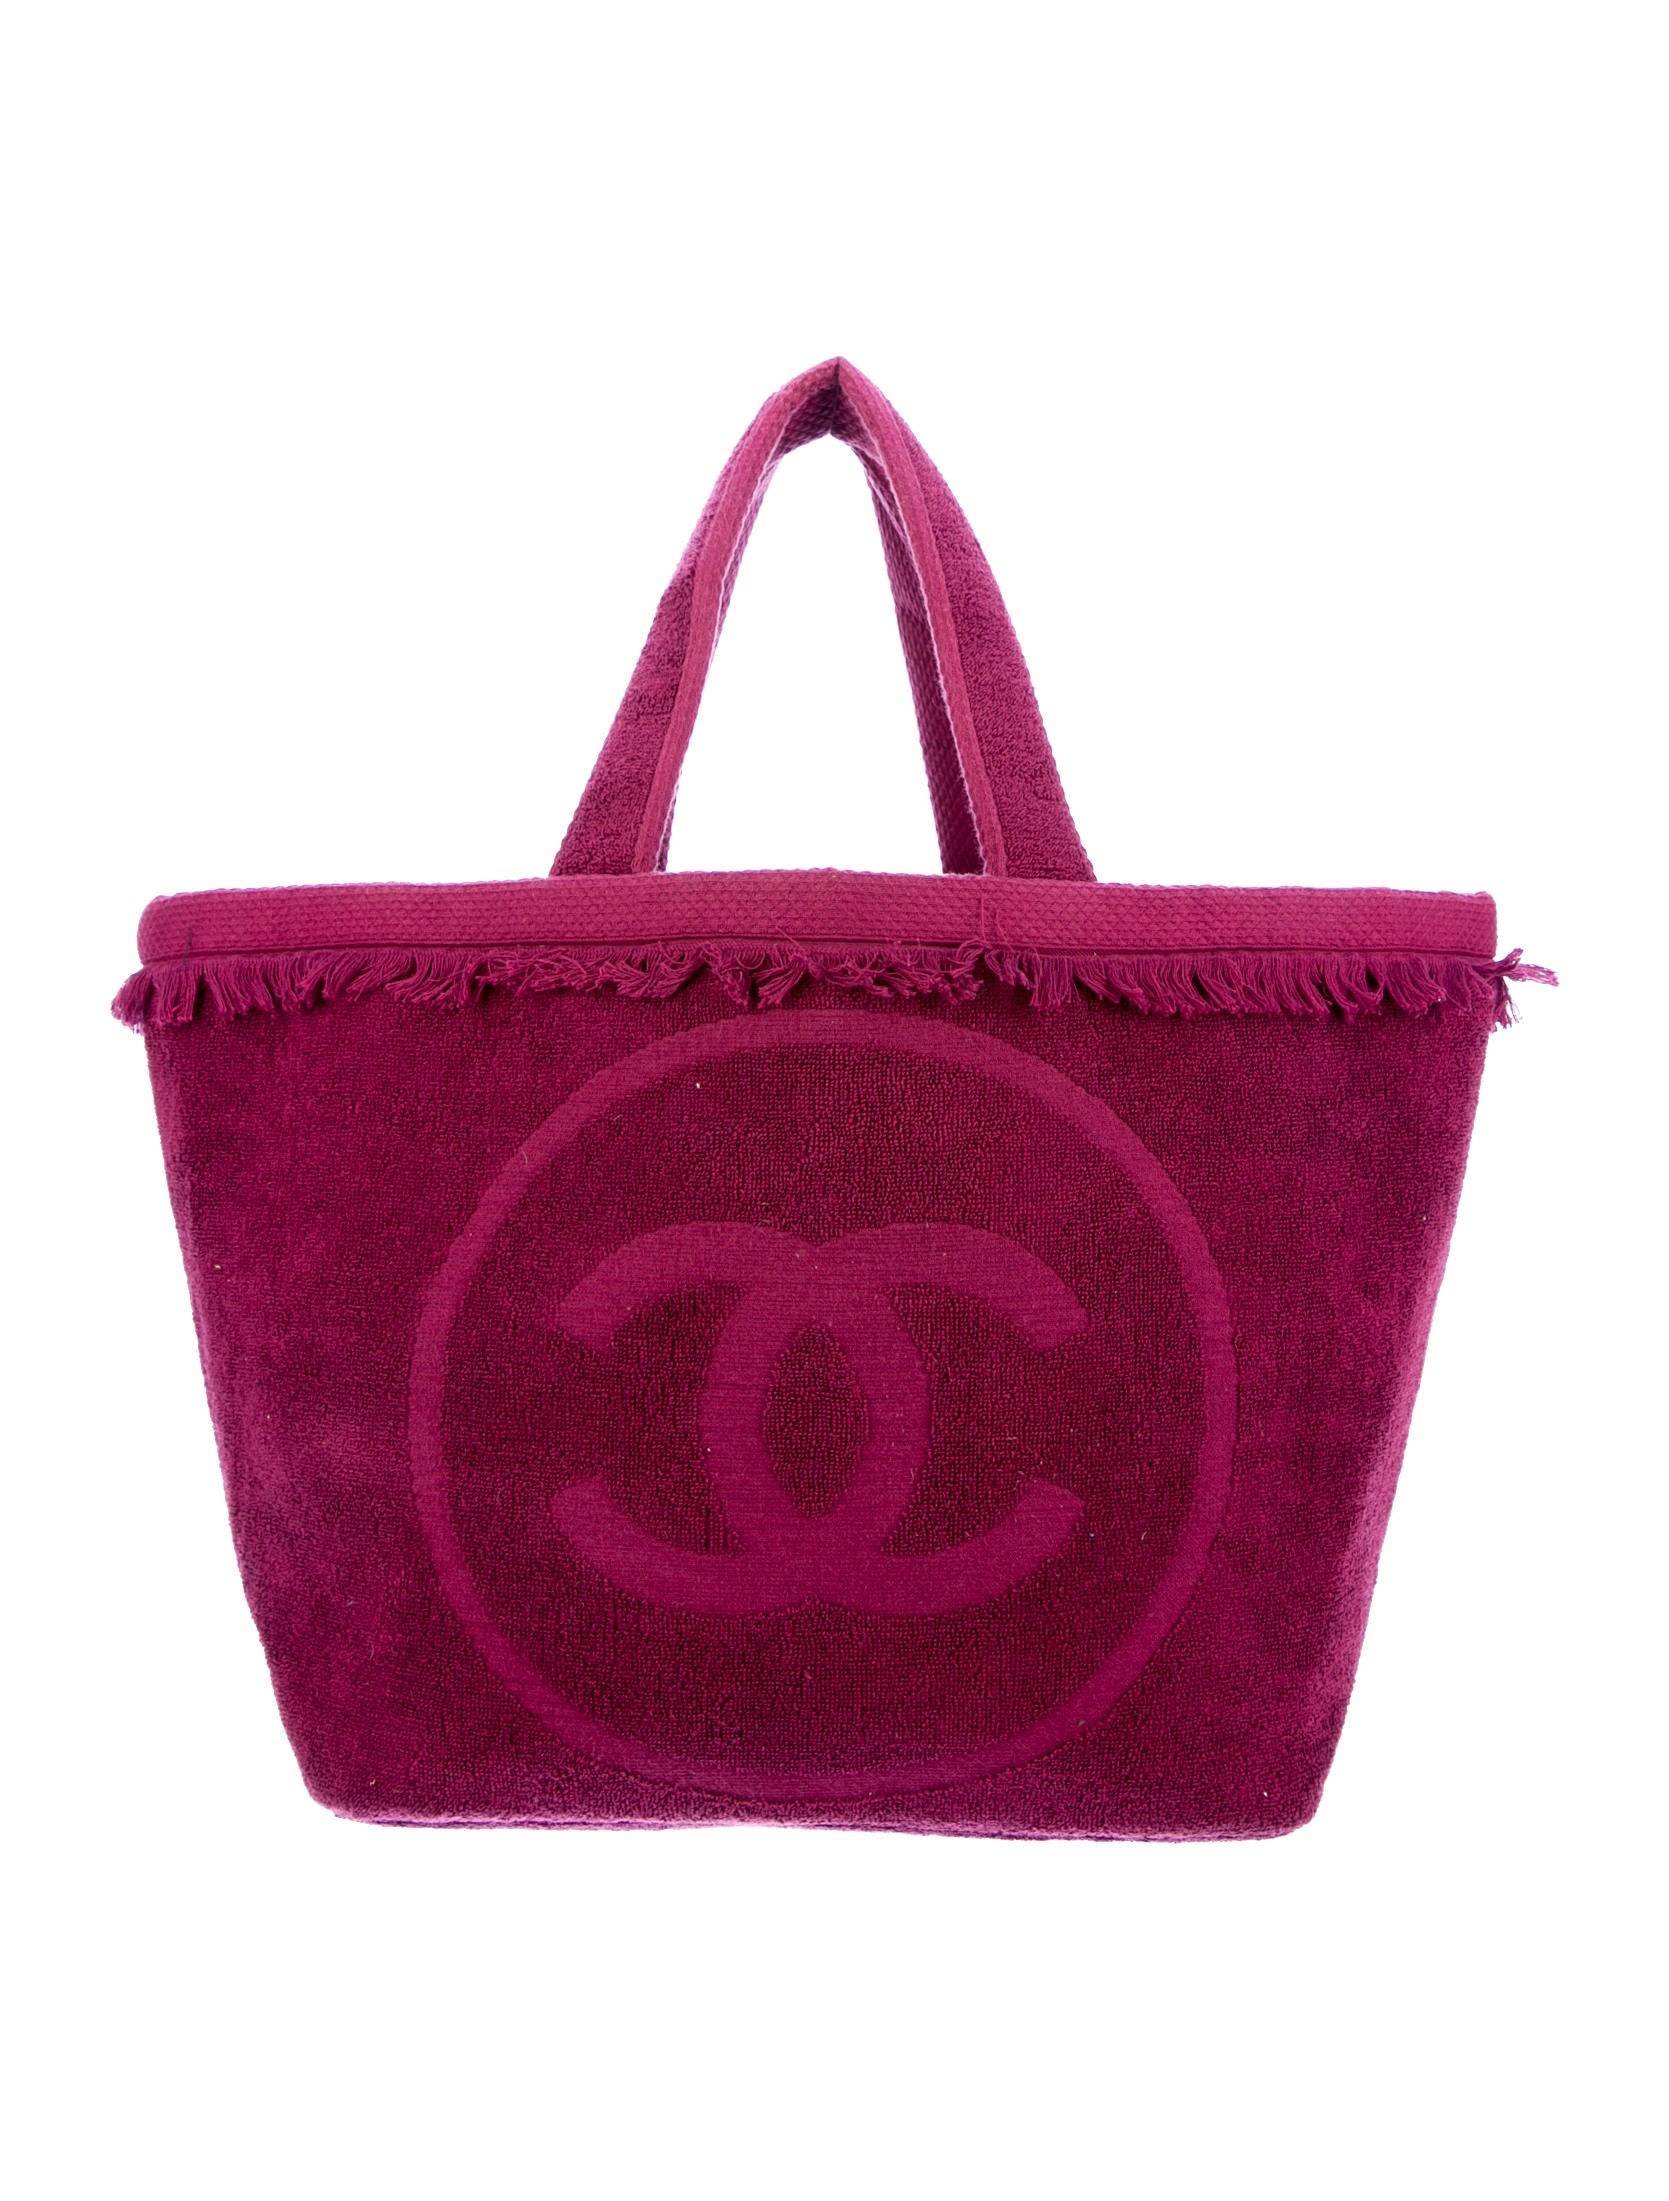 d38c03c0c18e Chanel Beach Bag Sale | Stanford Center for Opportunity Policy in ...